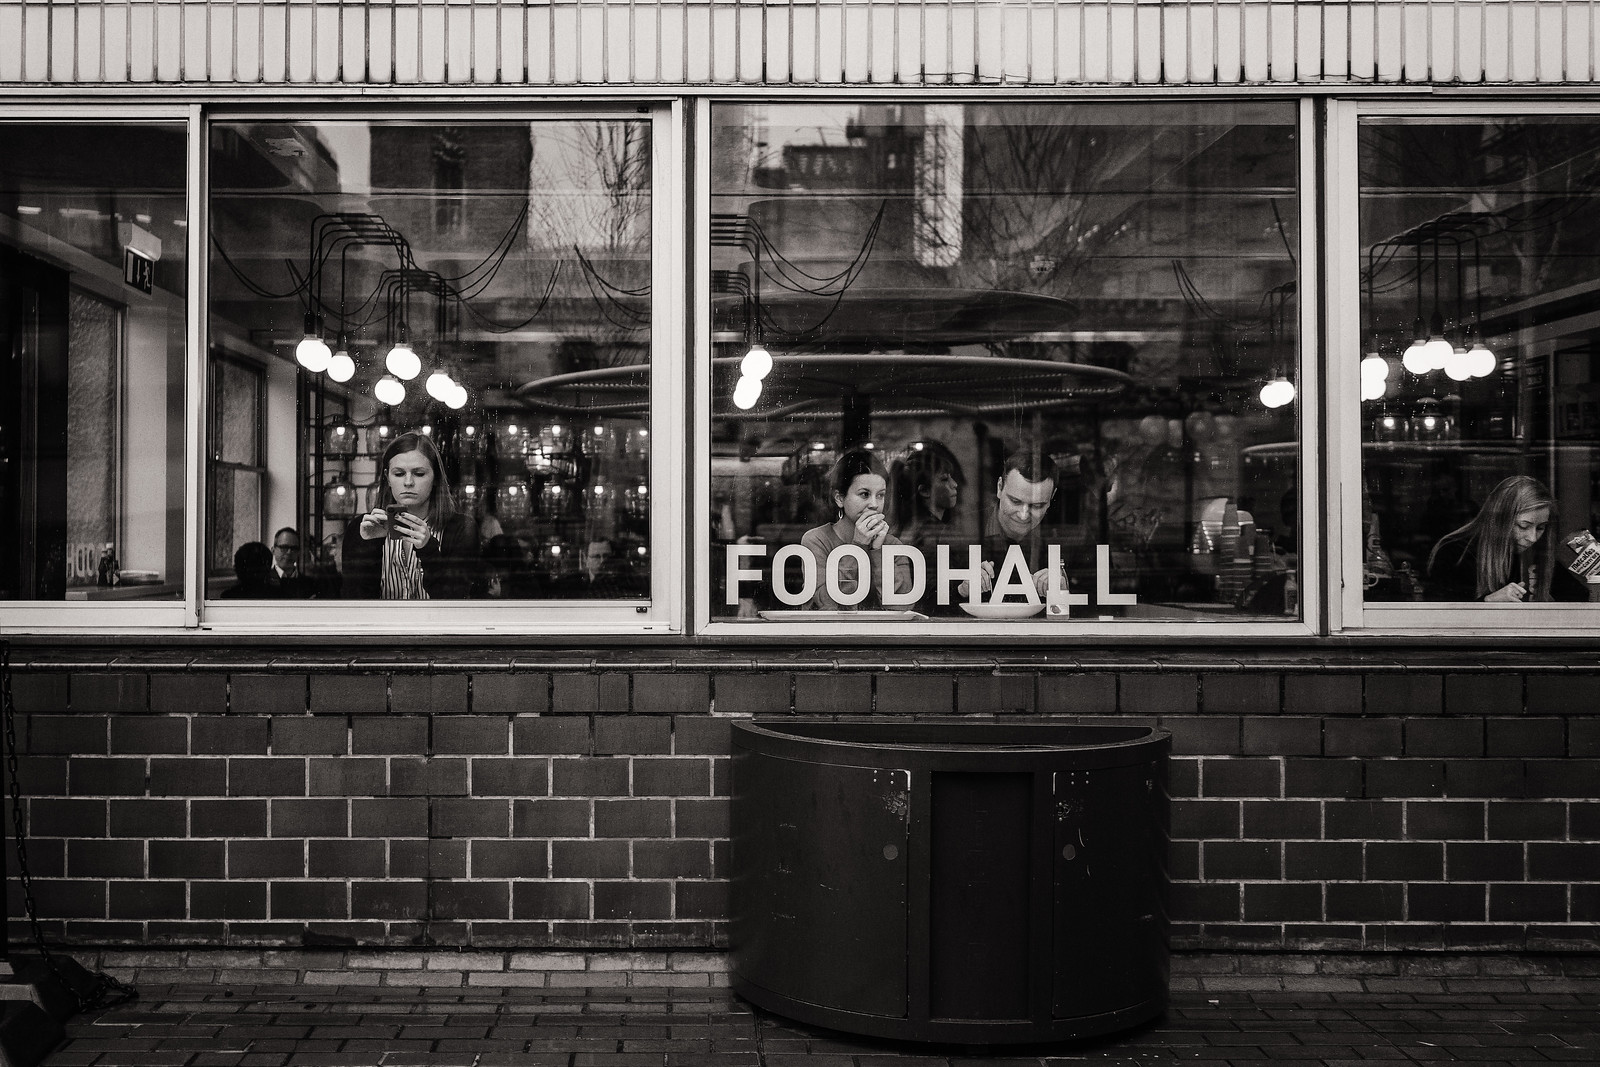 Lunch at the Food Hall